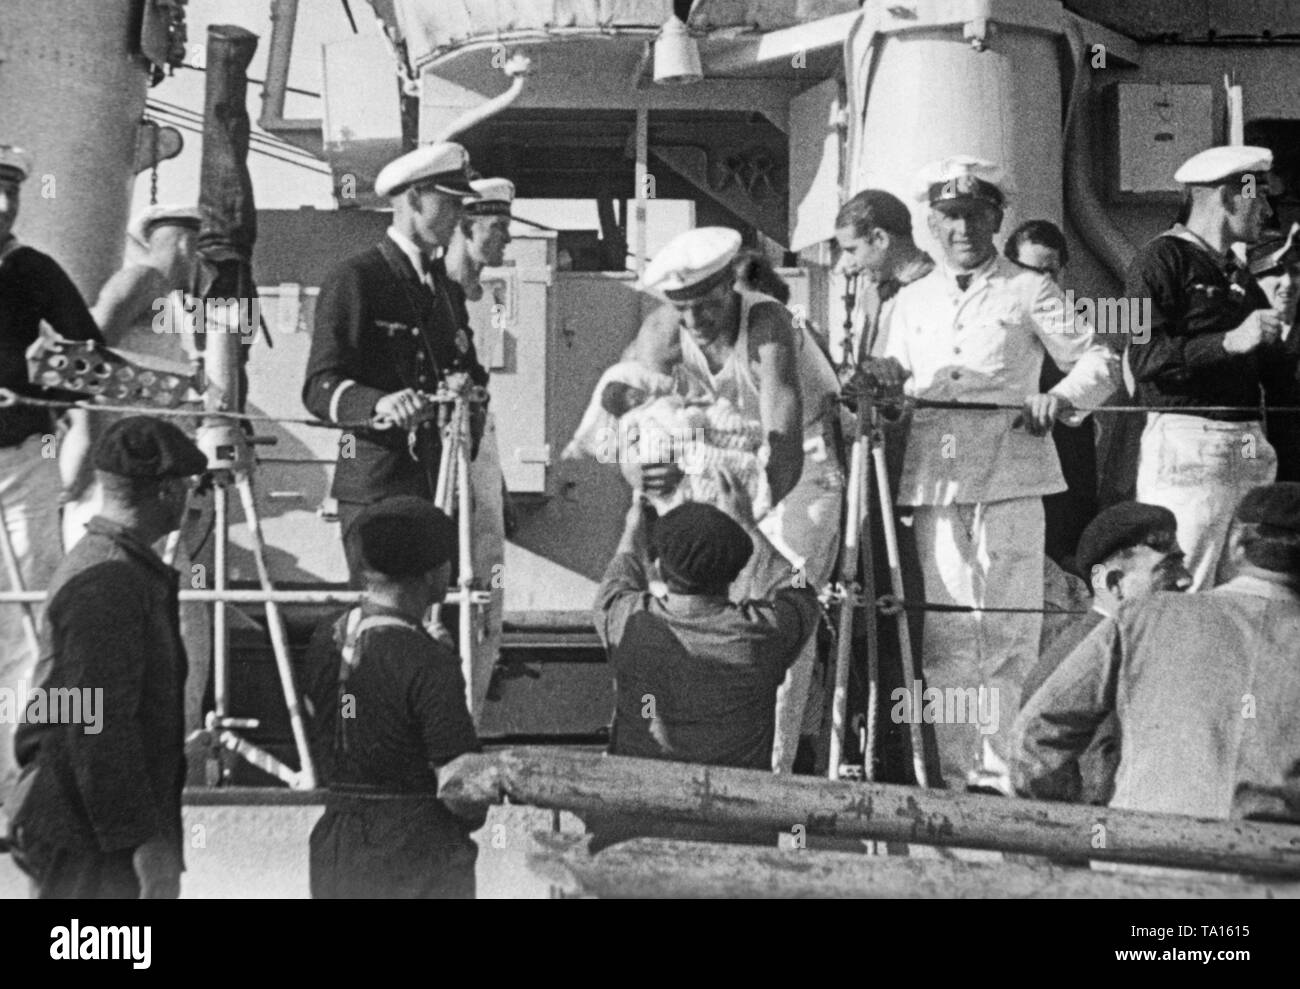 The German destroyers 'Jaguar' and 'Wolf' bring Spanish refugees to the port of St. Jean de Luz, French Basque country, France, during the Spanish Civil War on September 18, 1936. In the photo, a German sailor, who is handing over a baby from the deck. German naval officers are standing around the man taking the baby. - Stock Image